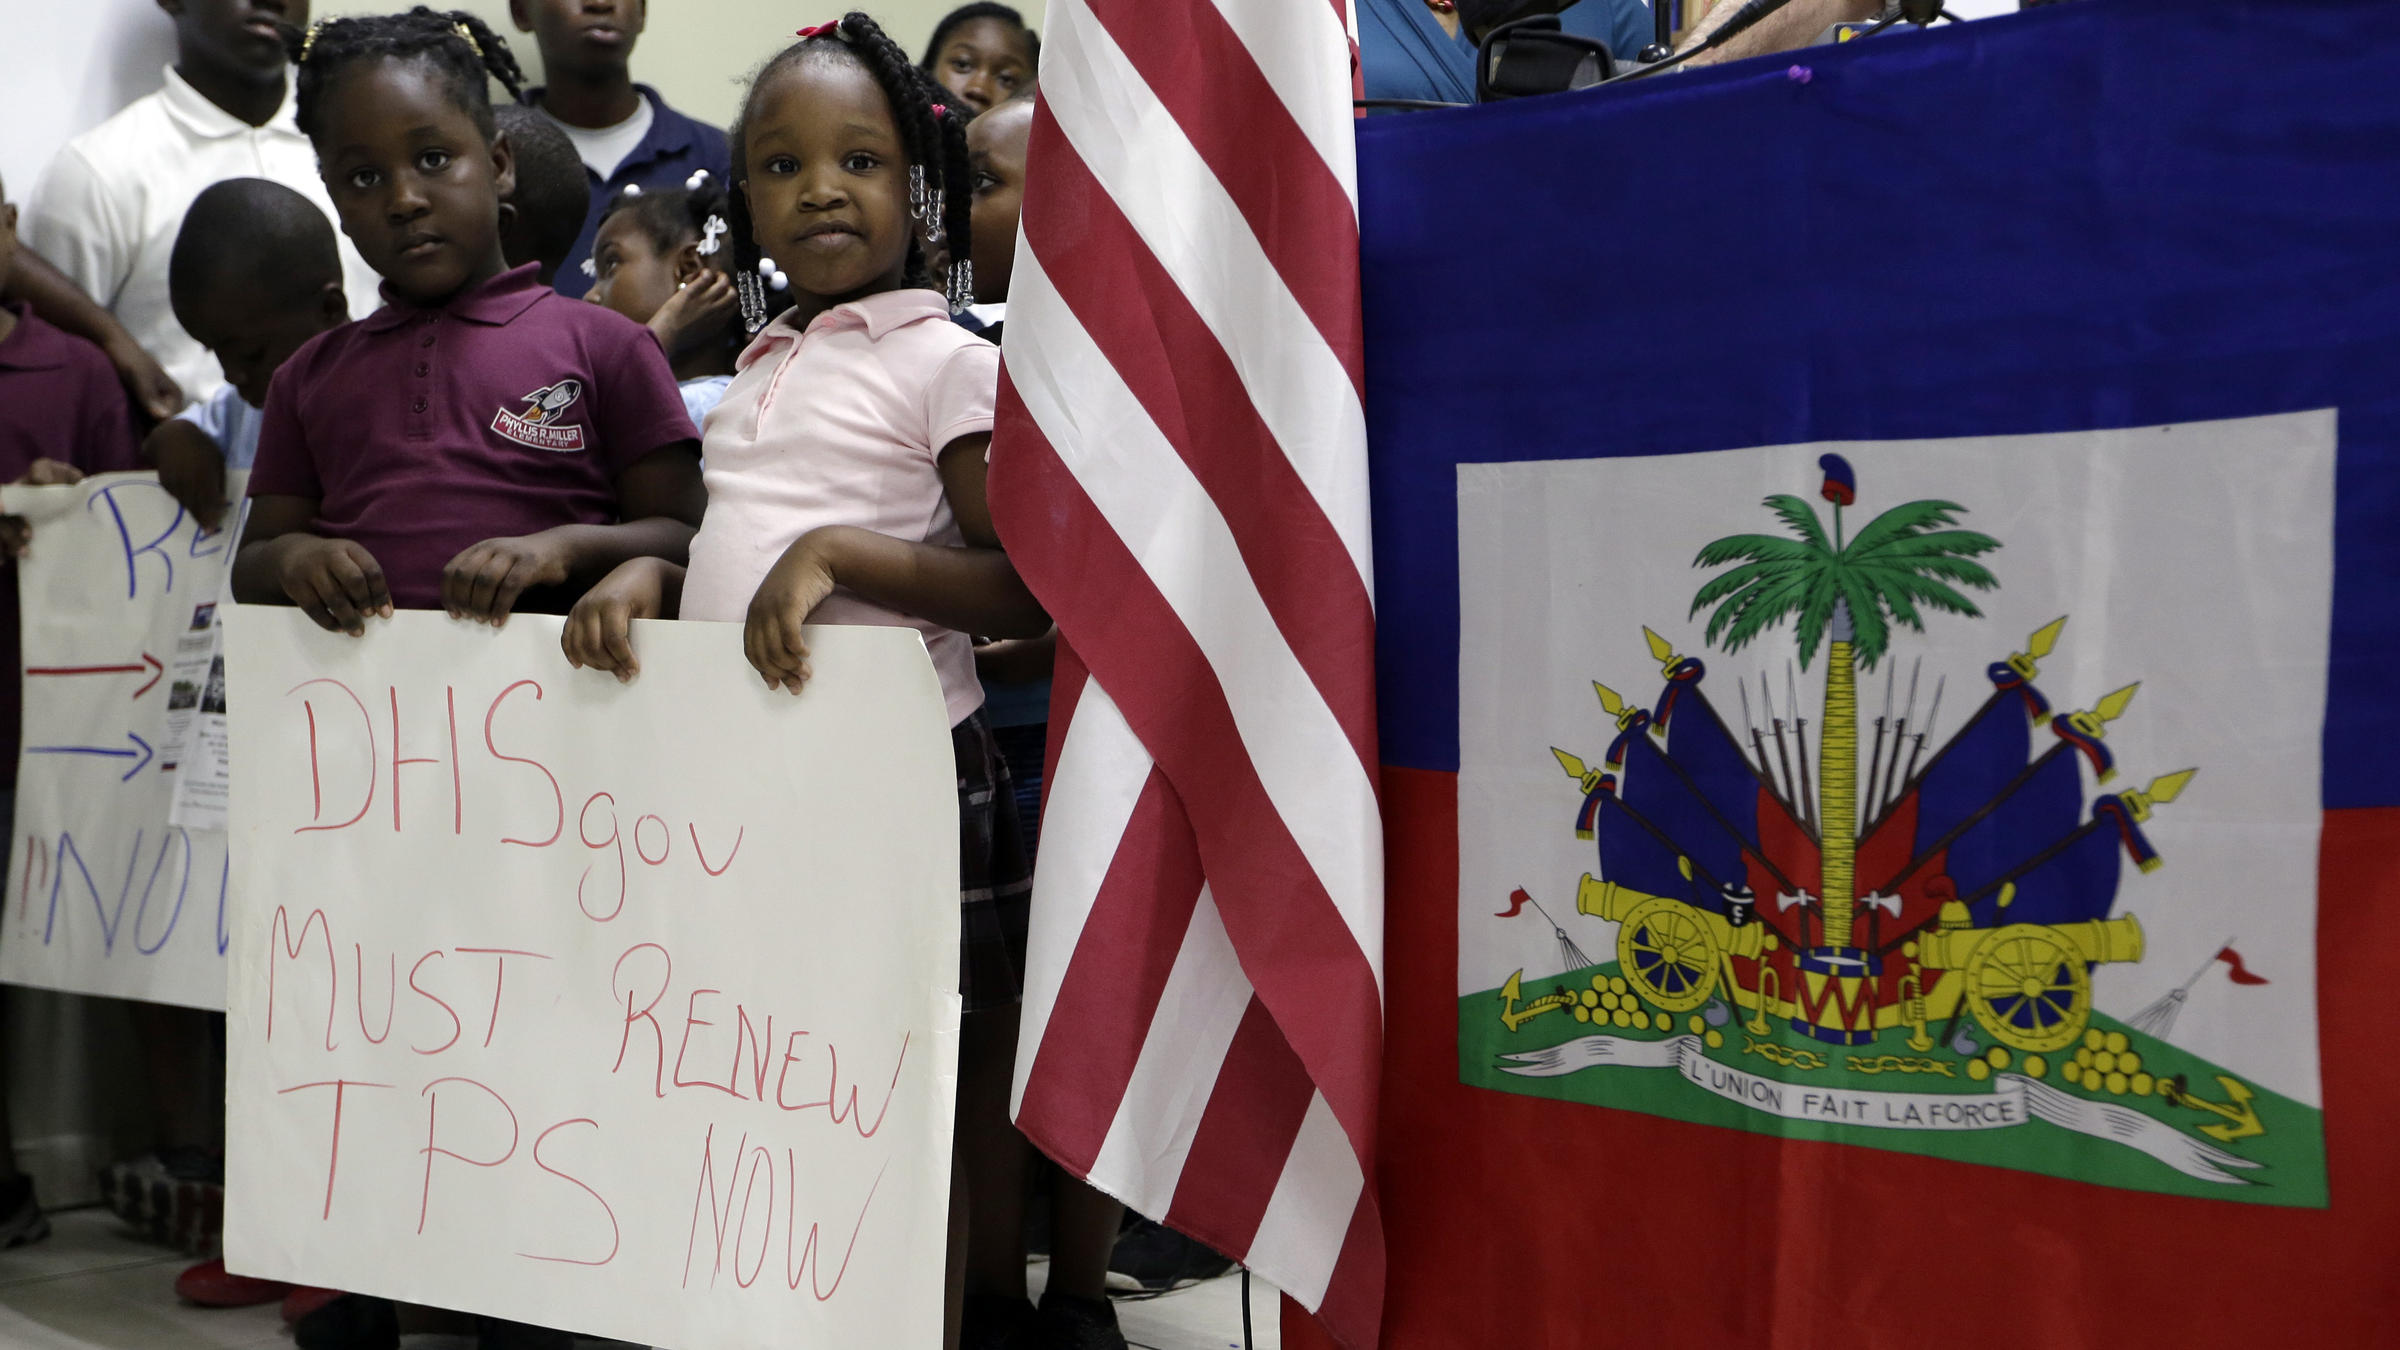 NAACP Files Discrimination Lawsuit Against Department Of Homeland Security Over Haitian Immigrants